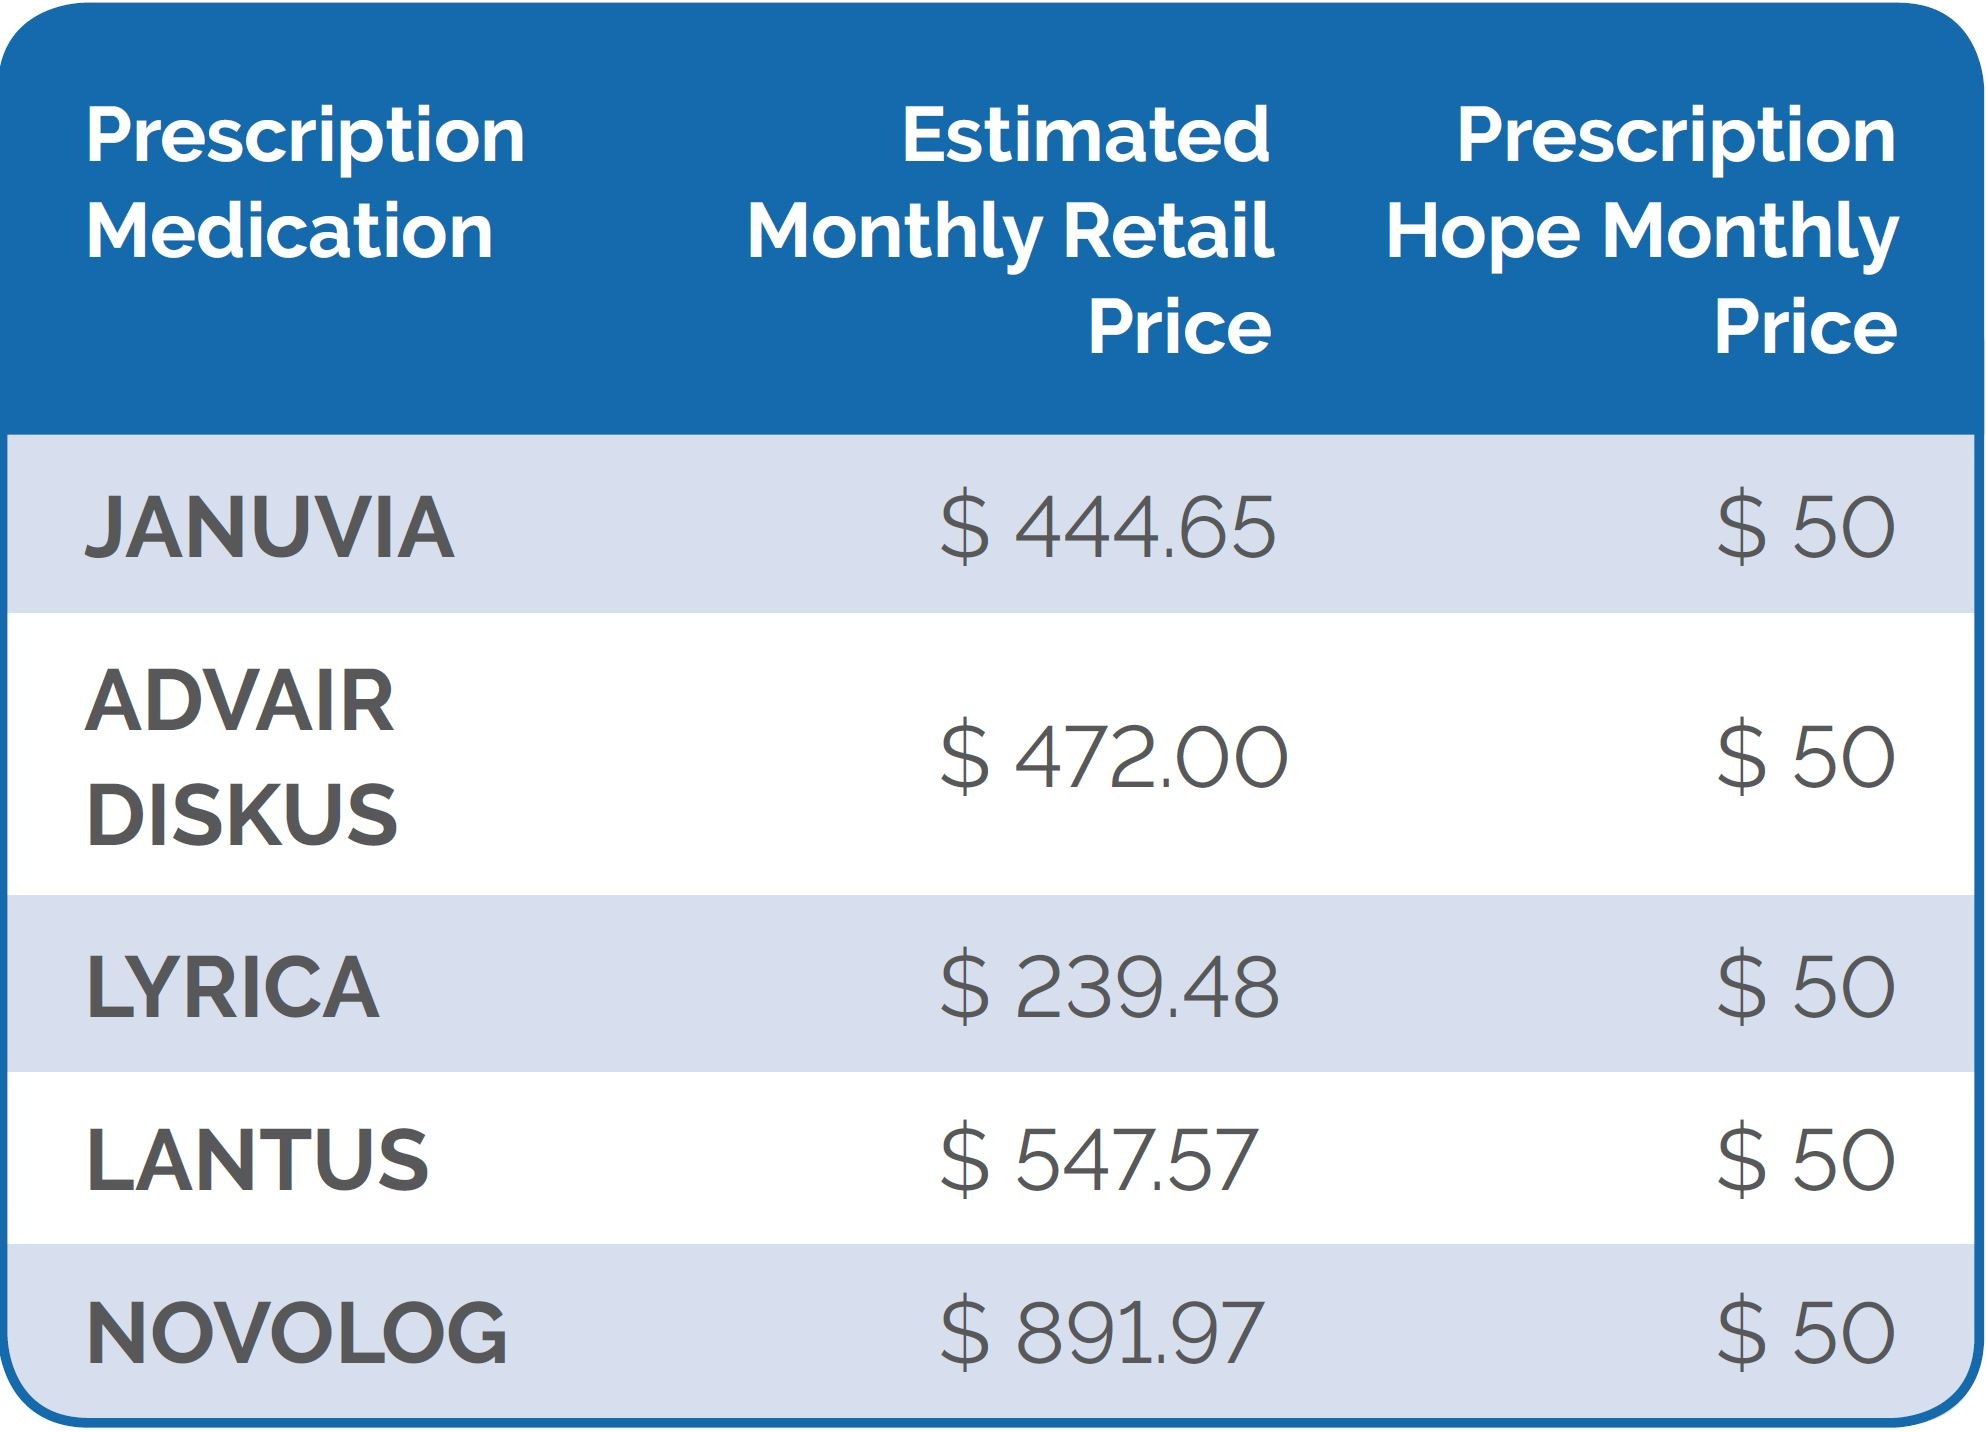 Trulicity Coupon (Dulaglutide) - $50 Per Month Total Cost And - Free Advair Coupon Printable